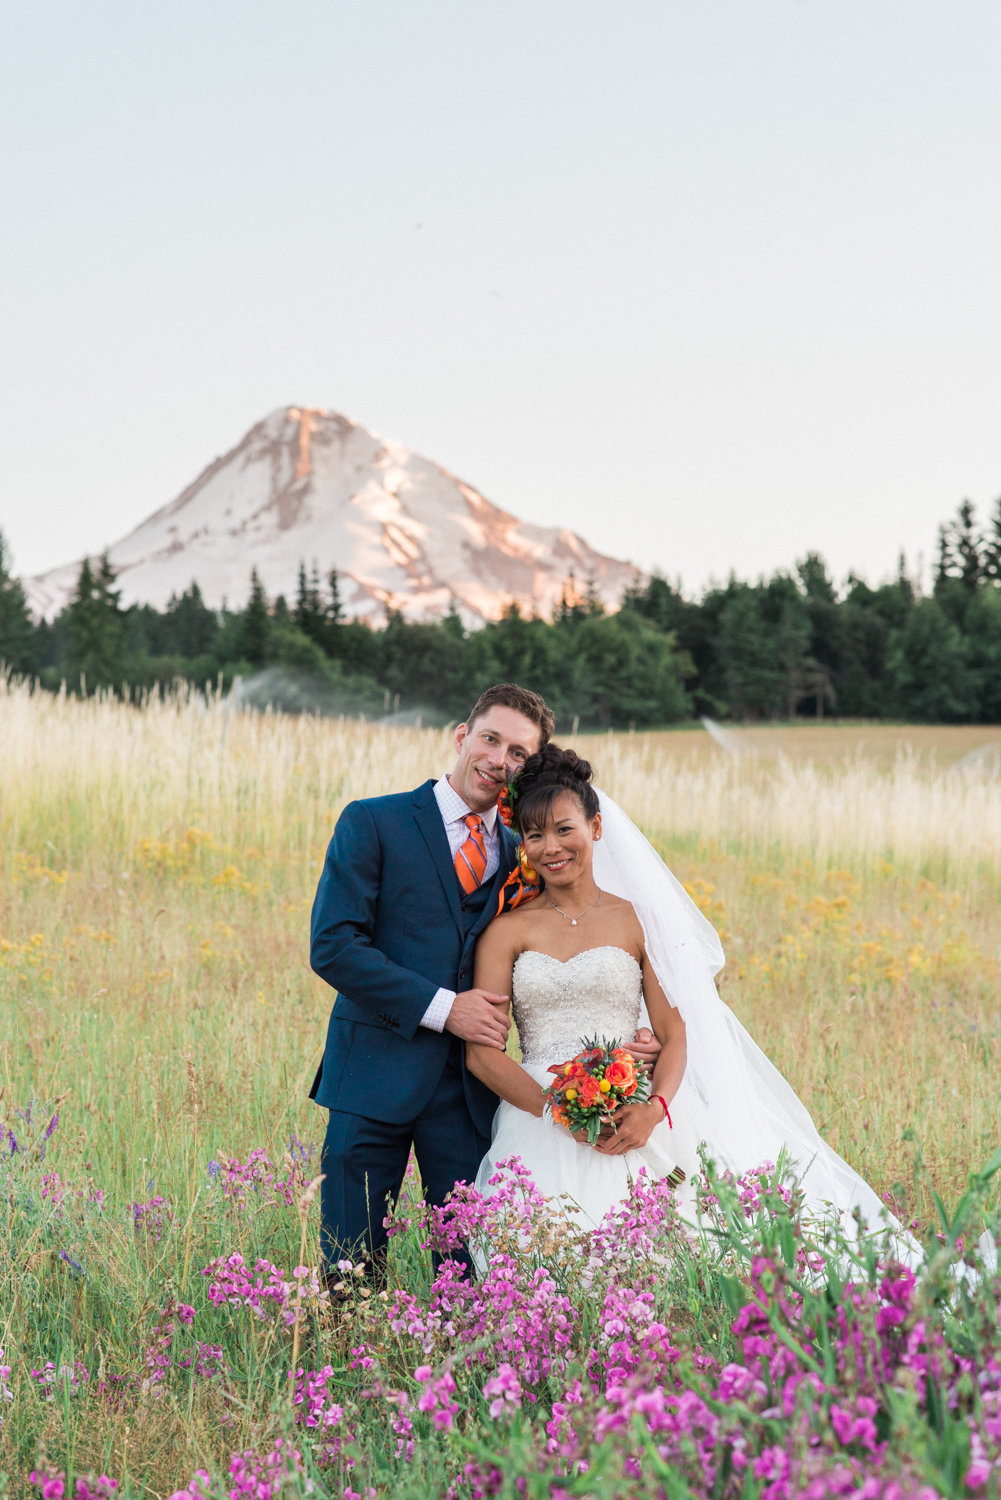 Mt-hood-bnb-wedding-portland-oregon-2